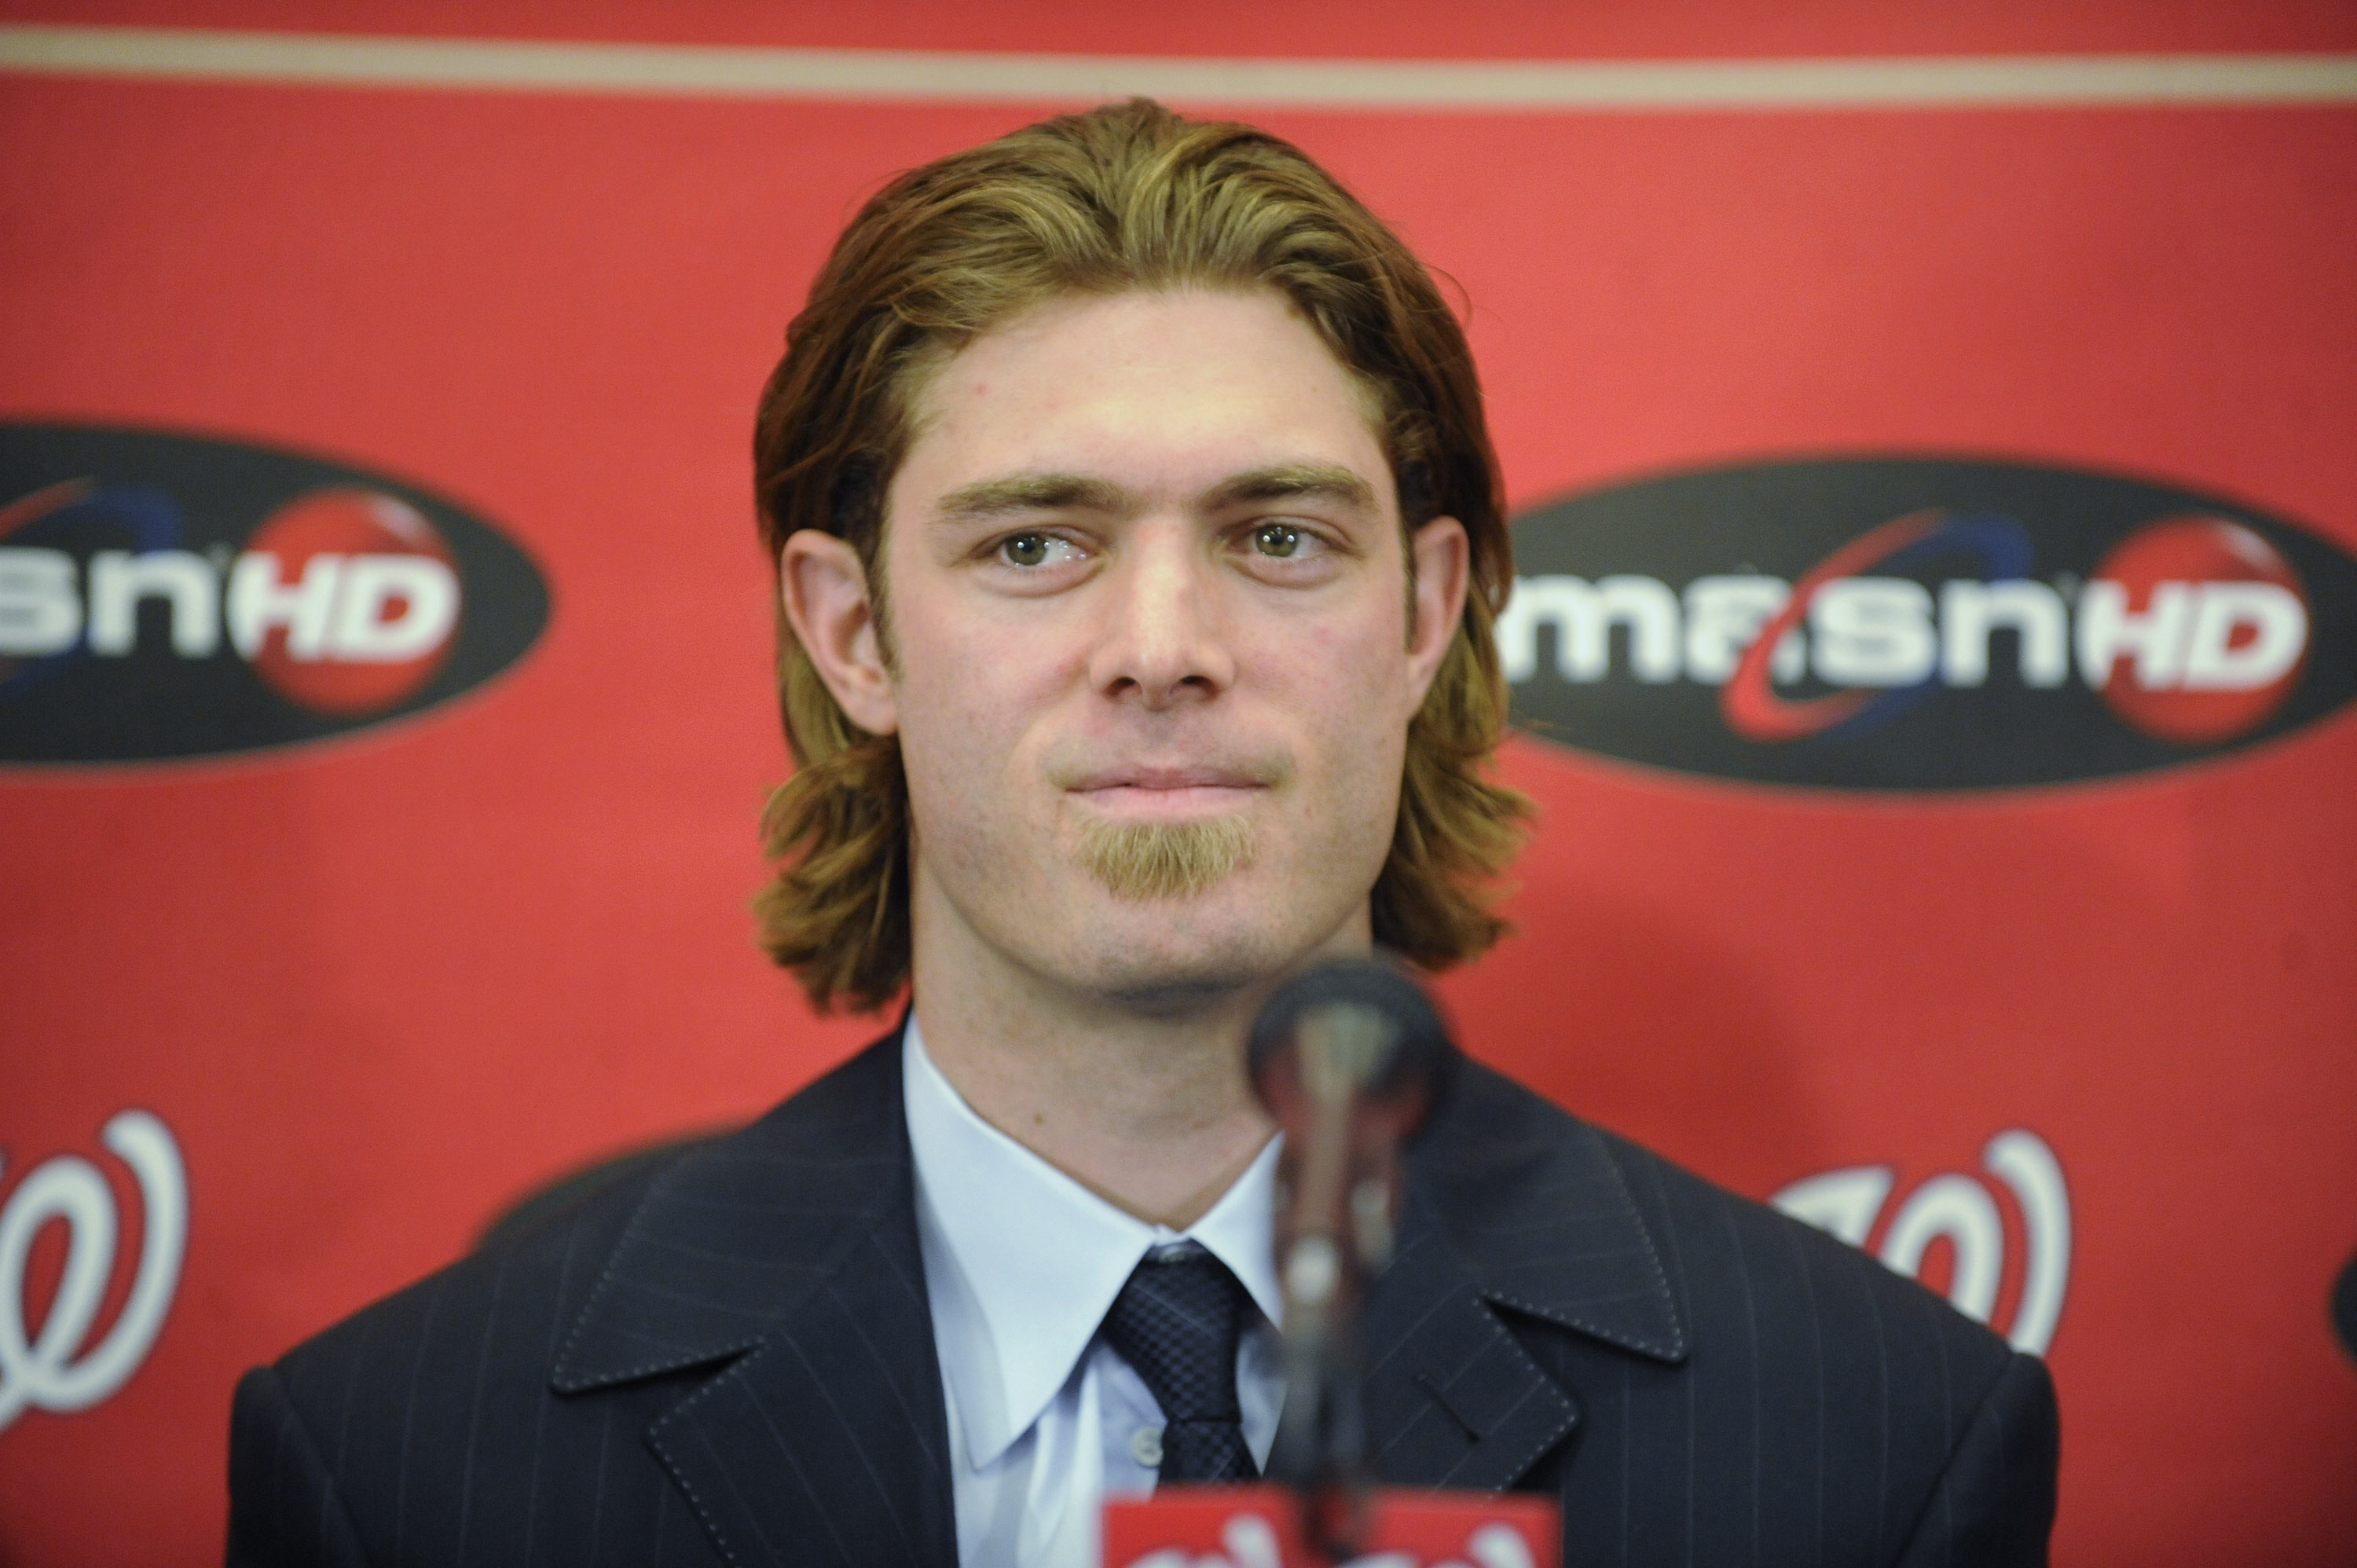 WASHINGTON, DC - DECEMBER 15:  Jayson Werth #28 of the Washington Nationals speaks as he is introduced to the media on December 15, 2010 at Nationals Park in Washington, DC.   (Photo by Mitchell Layton/Getty Images)